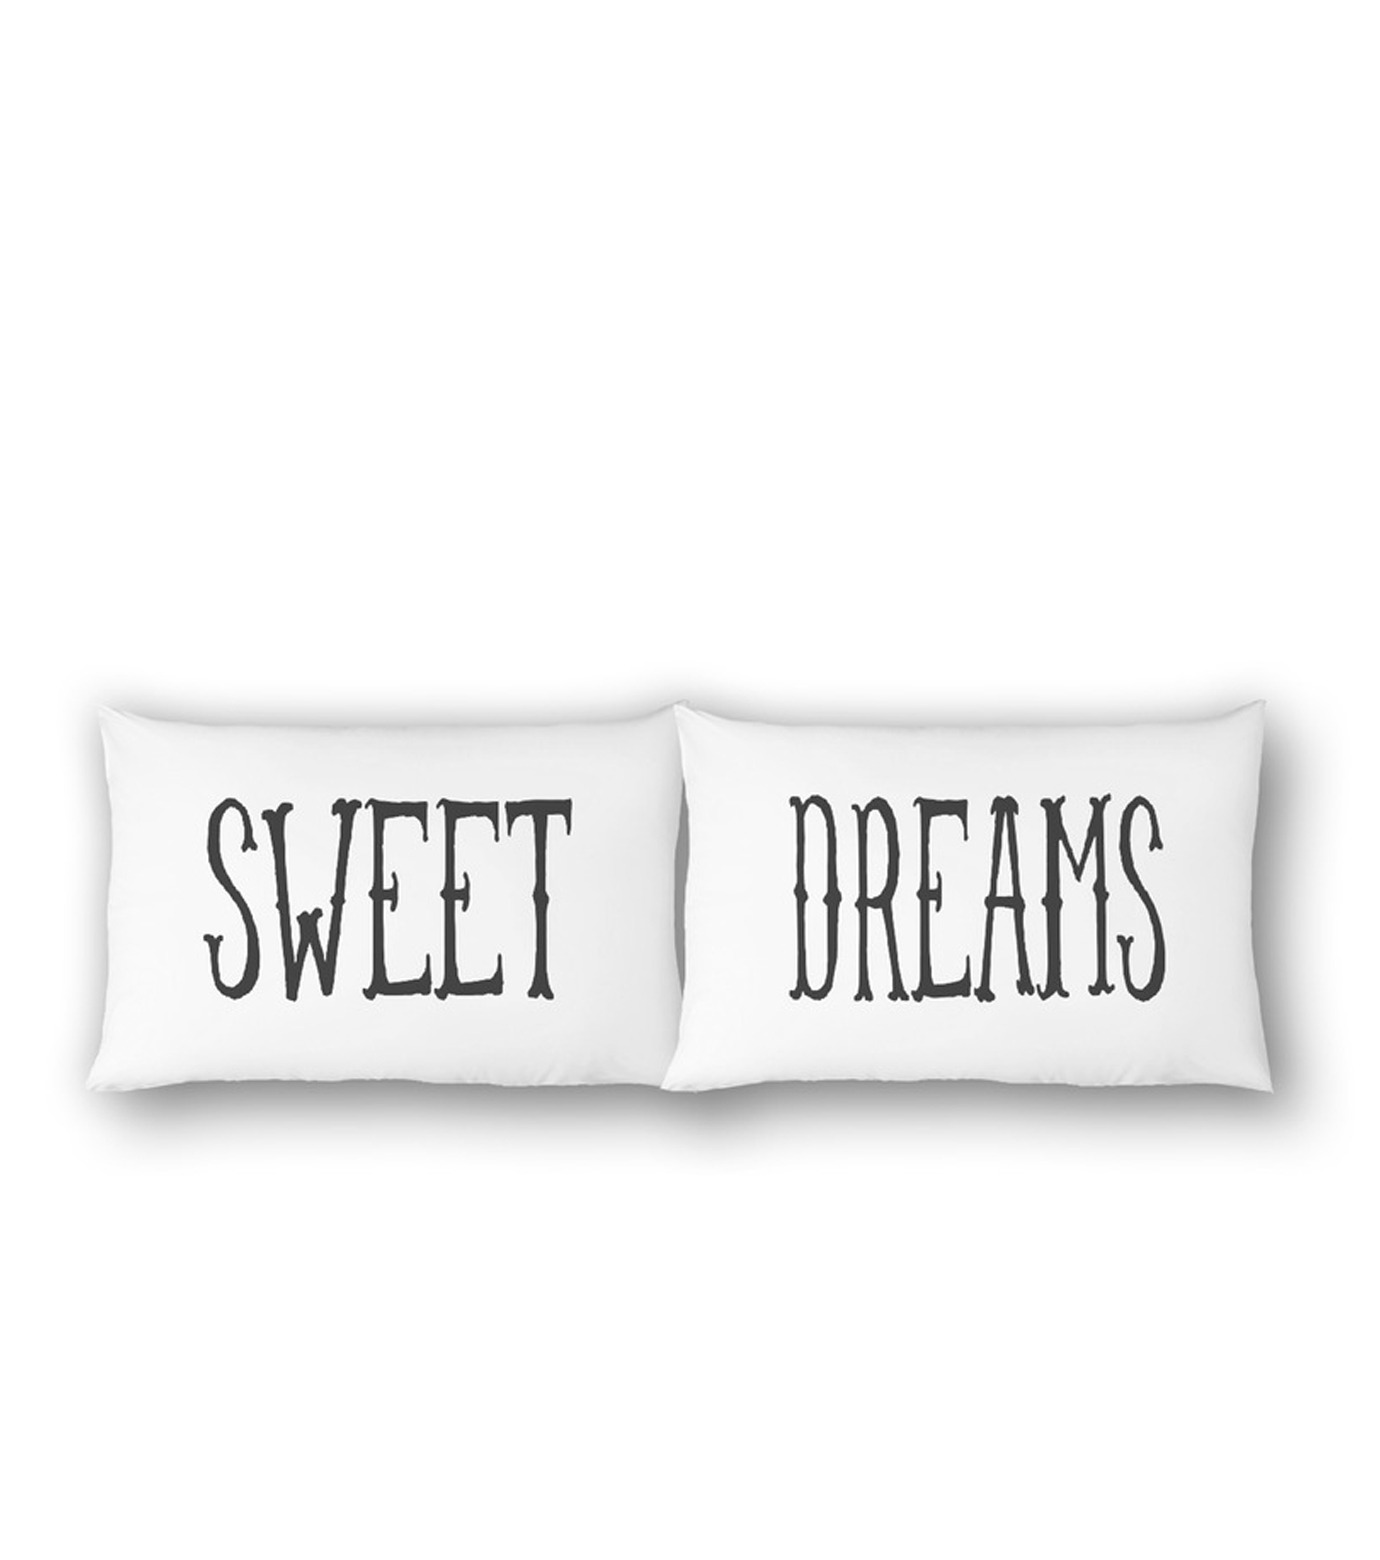 THE RISE AND FALL()のSWEET DREAMS PILLOWCASE SET-WHITE(インテリア/interior)-RFB1231-4 拡大詳細画像1